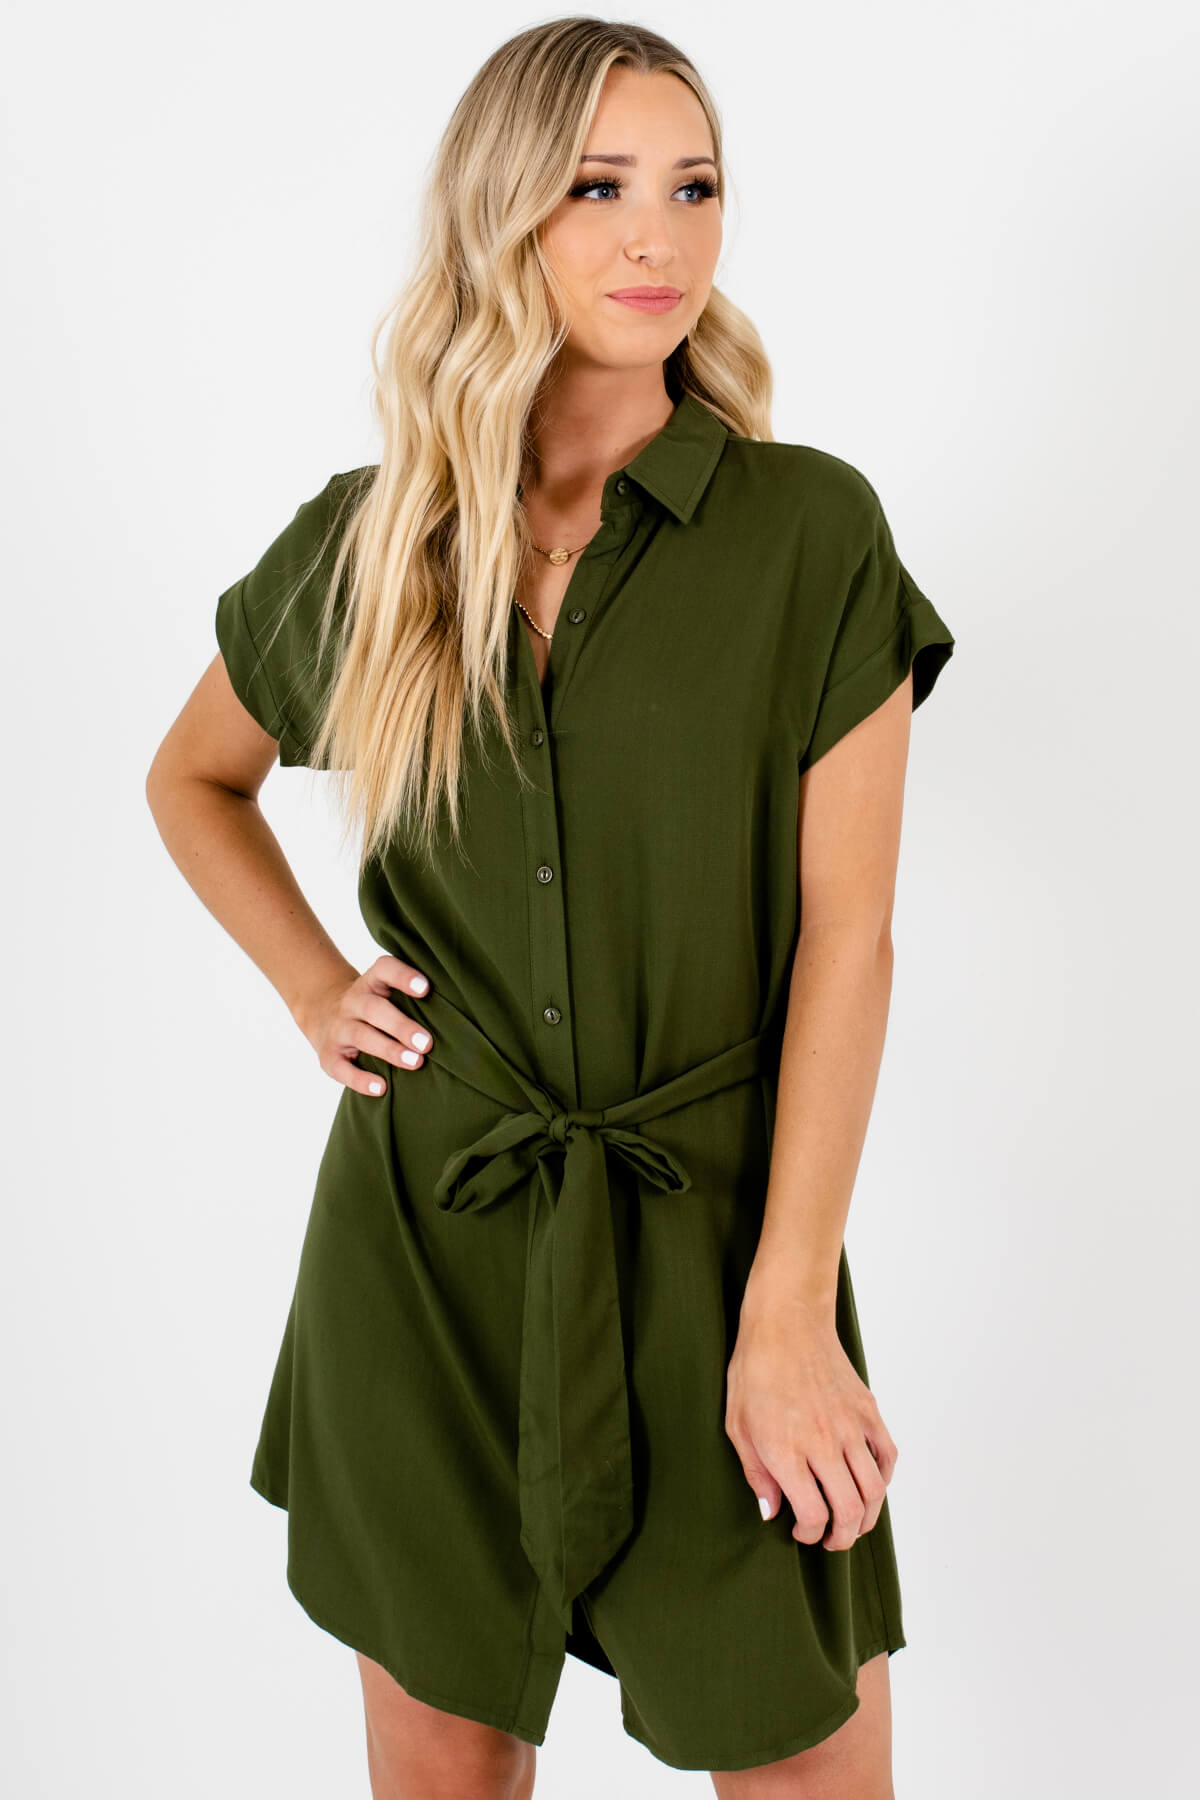 Olive Green Button-Up Shirt Mini Dresses Affordable Online Boutique